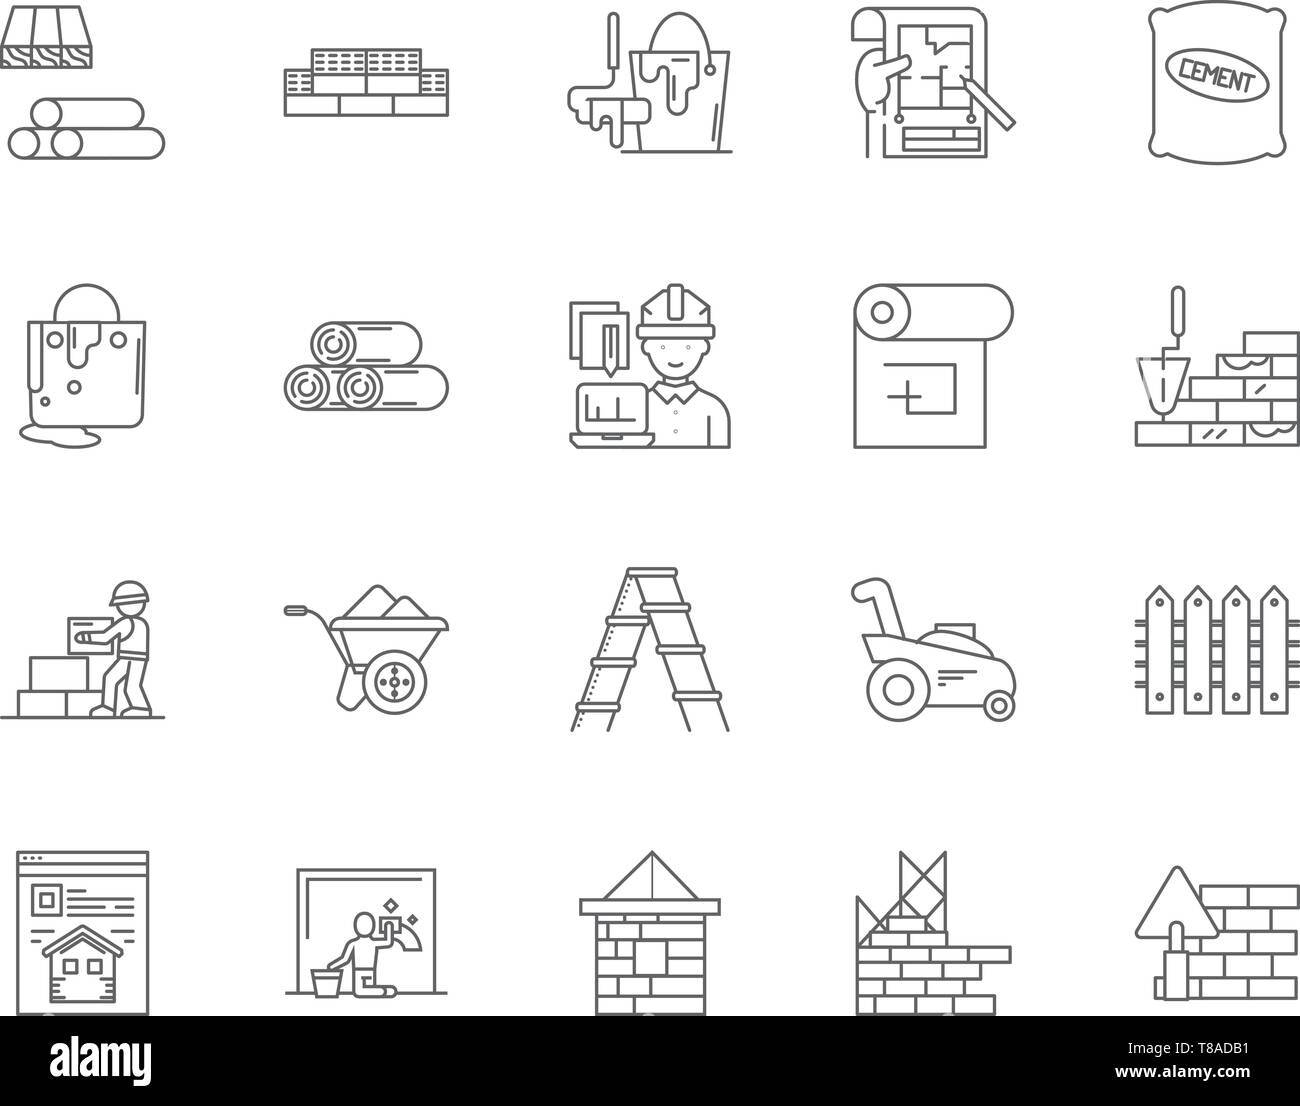 Builders merchants line icons, signs, vector set, outline illustration concept  - Stock Vector